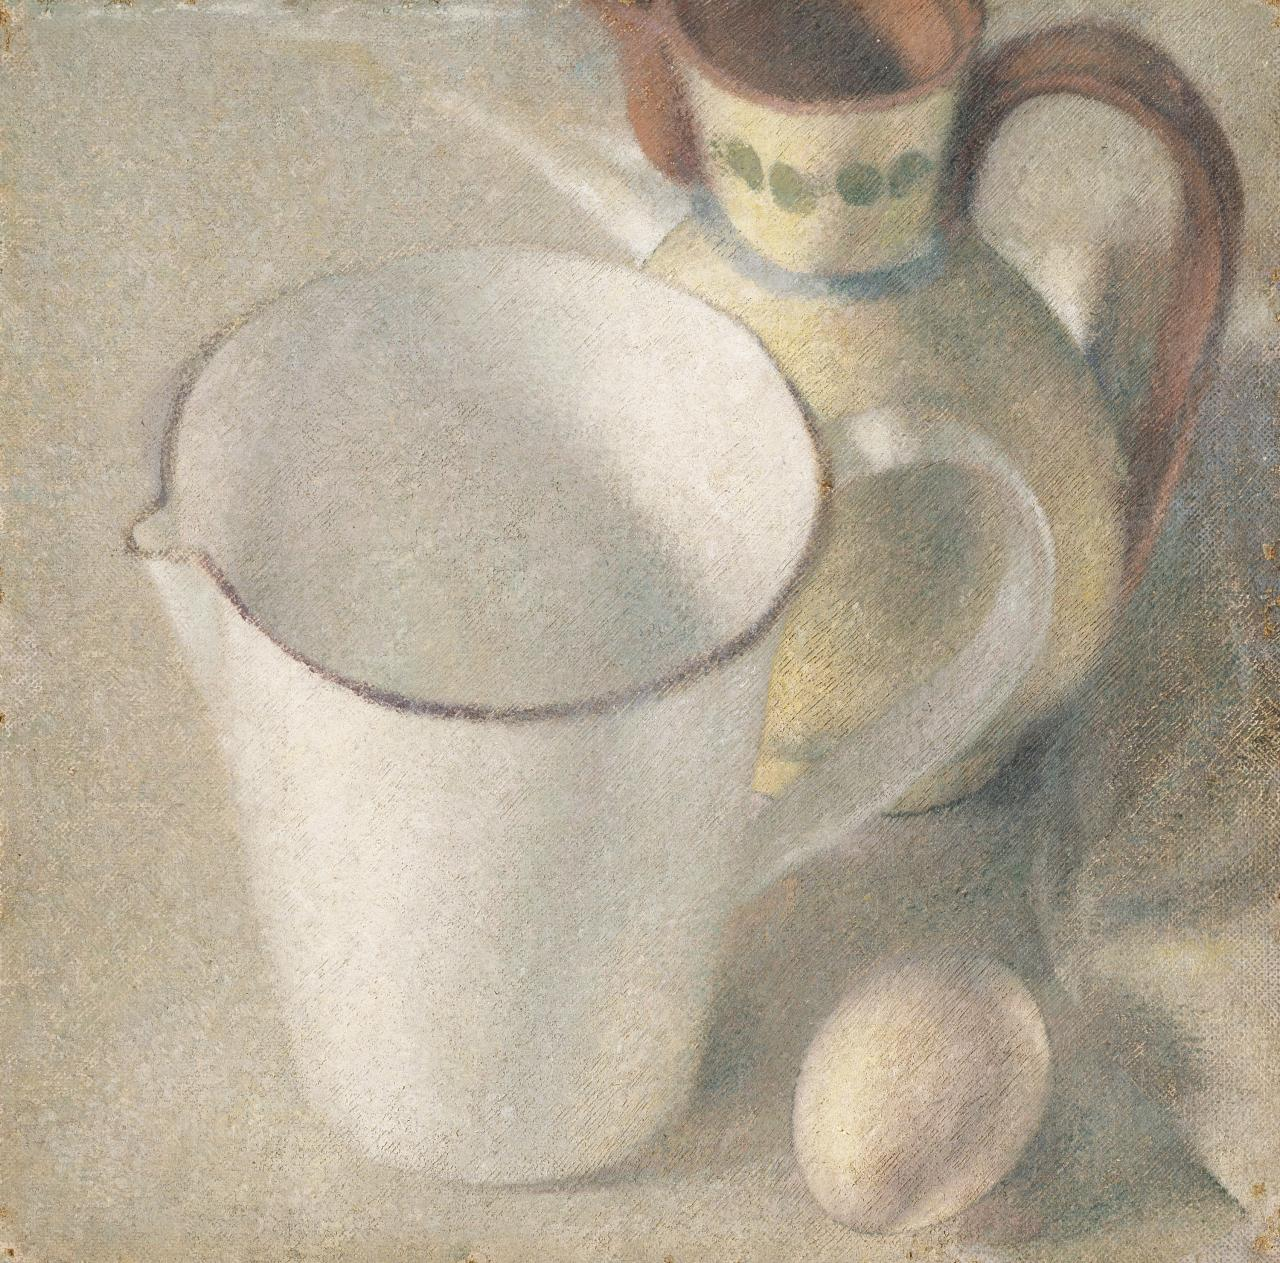 Jug and egg